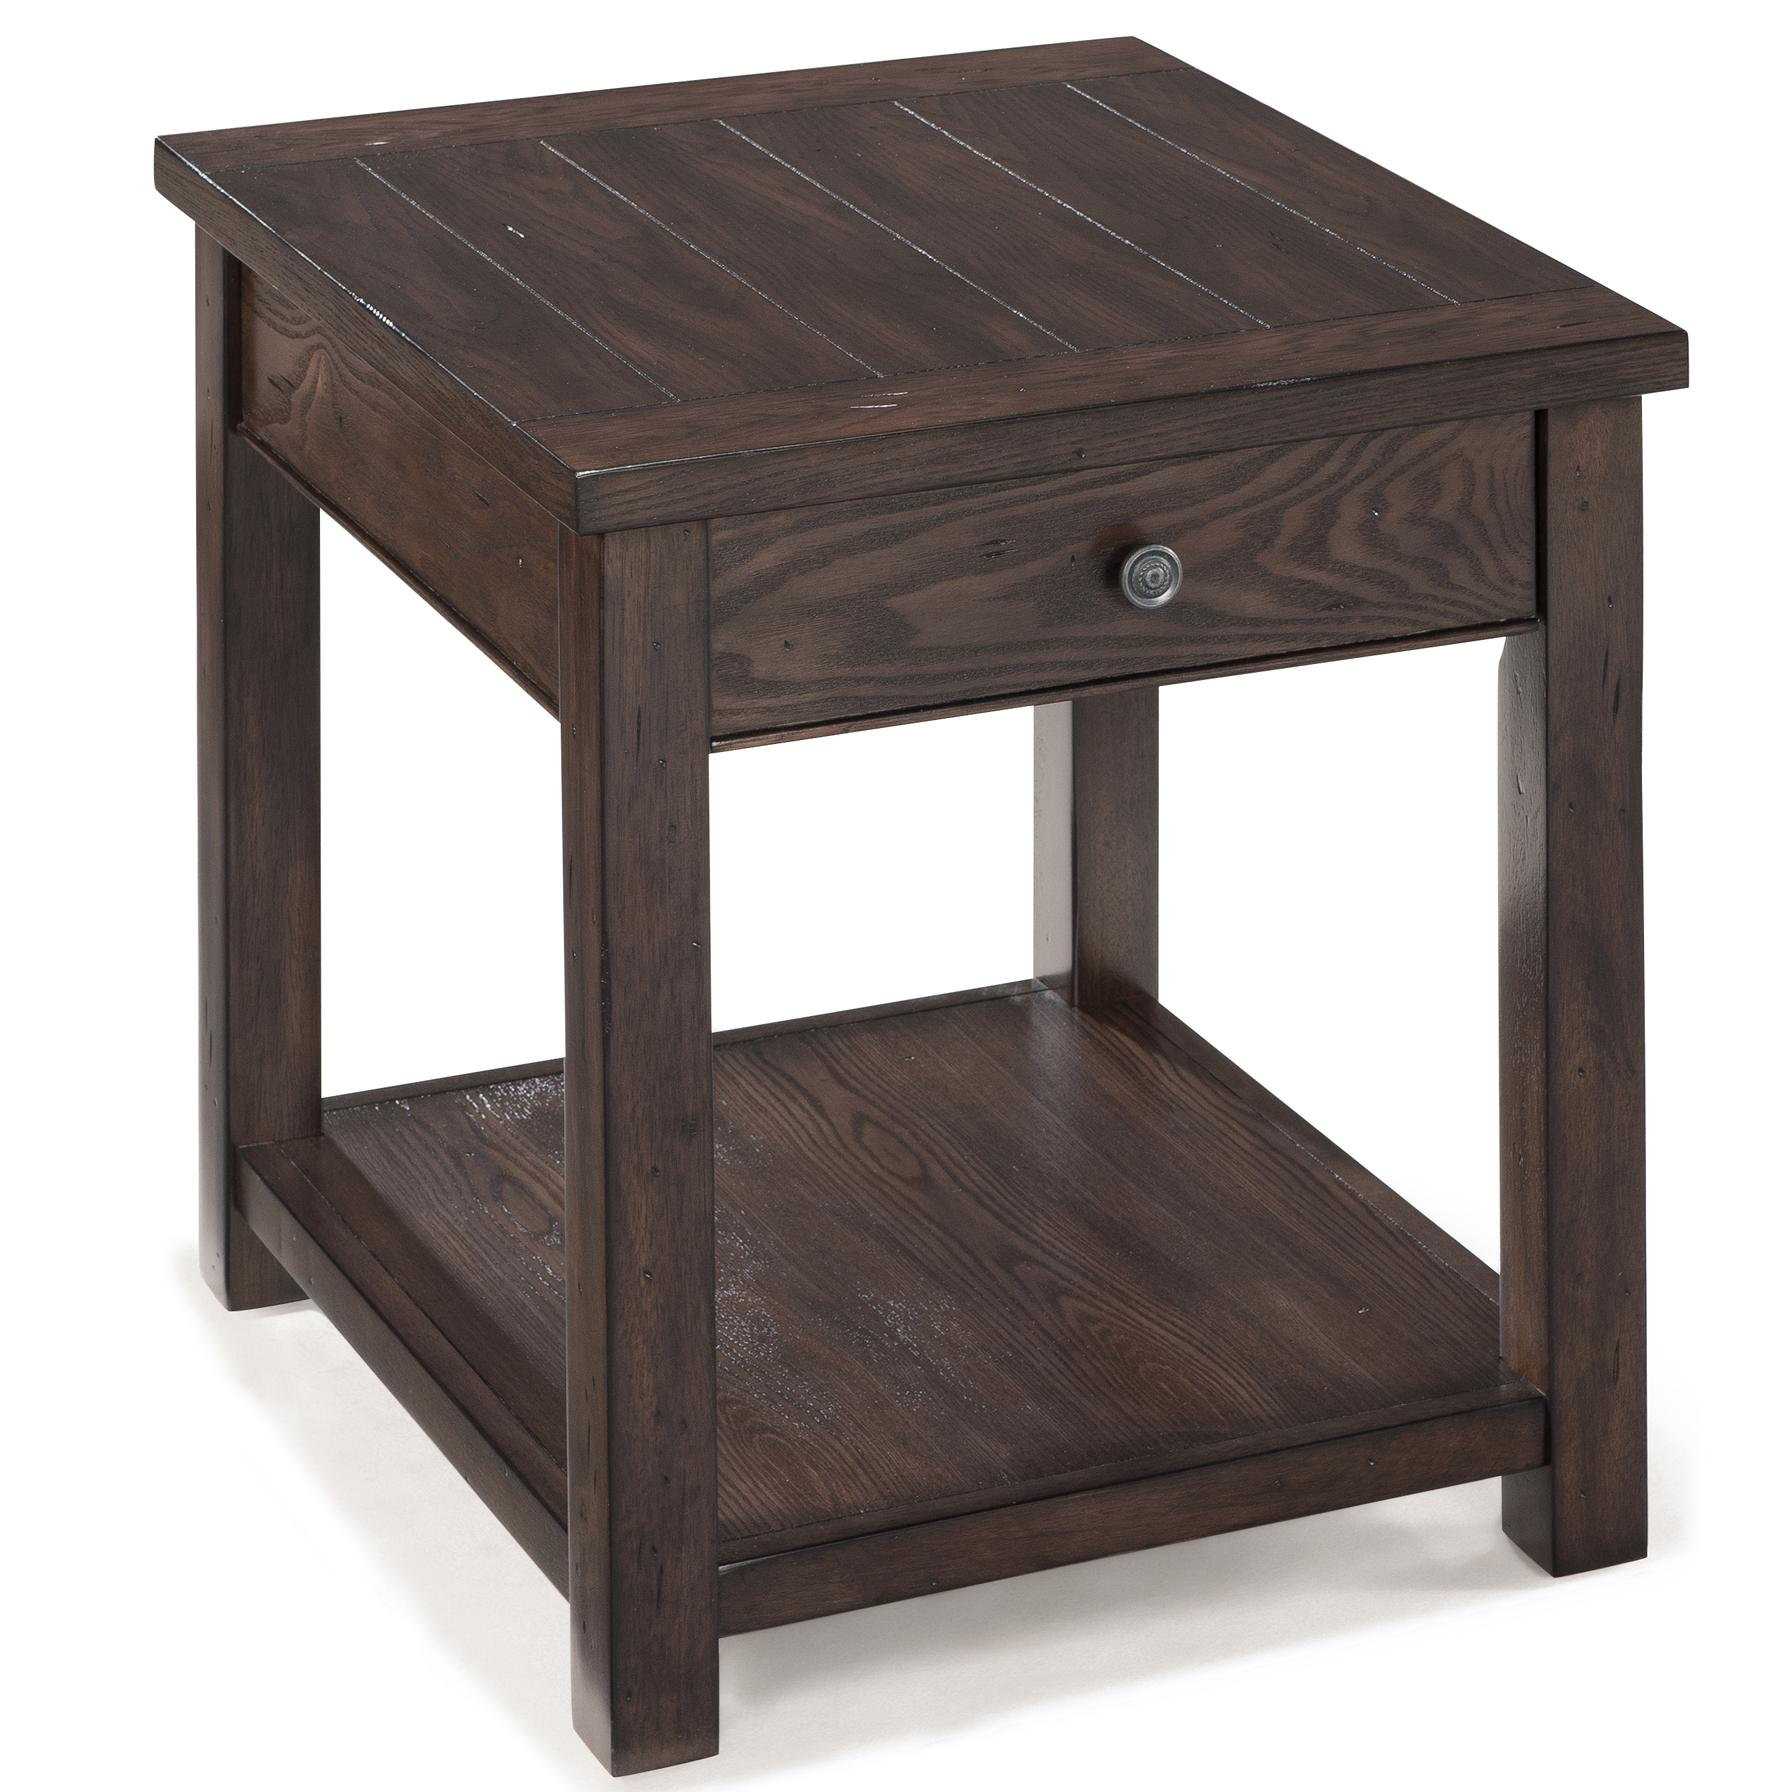 Magnussen Home Clayton Rectangular End Table - Item Number: T2741-03